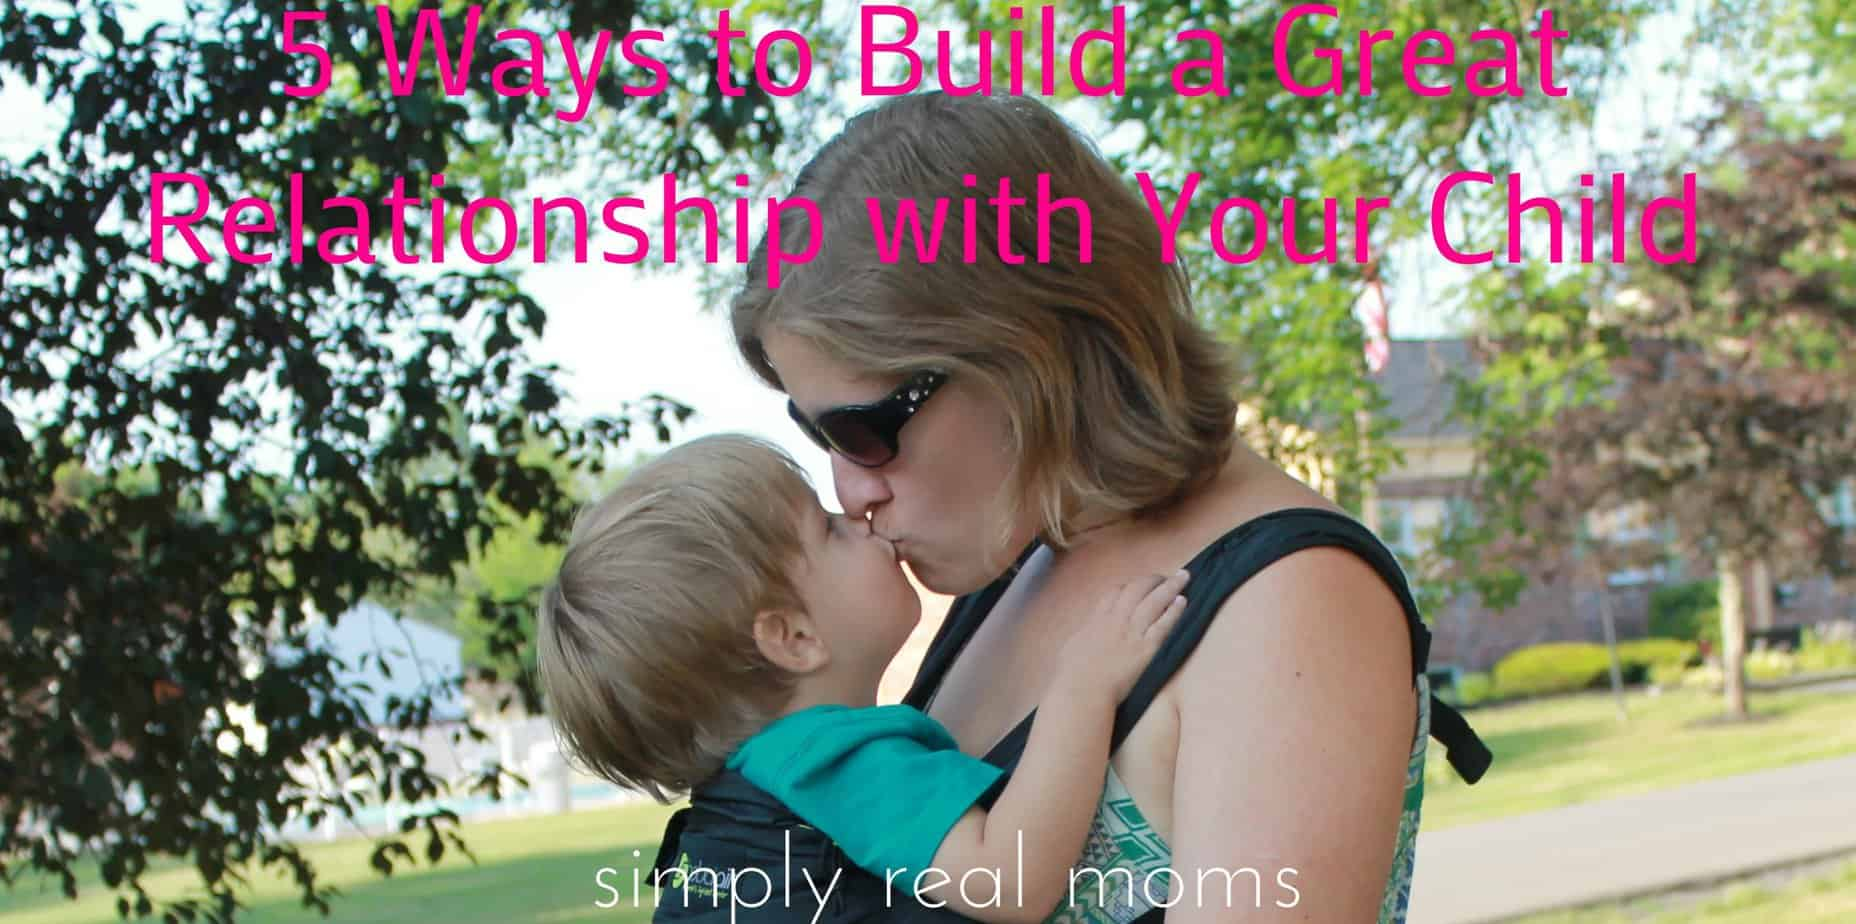 5 Ways to Build a Great Relationship with Your Child 1